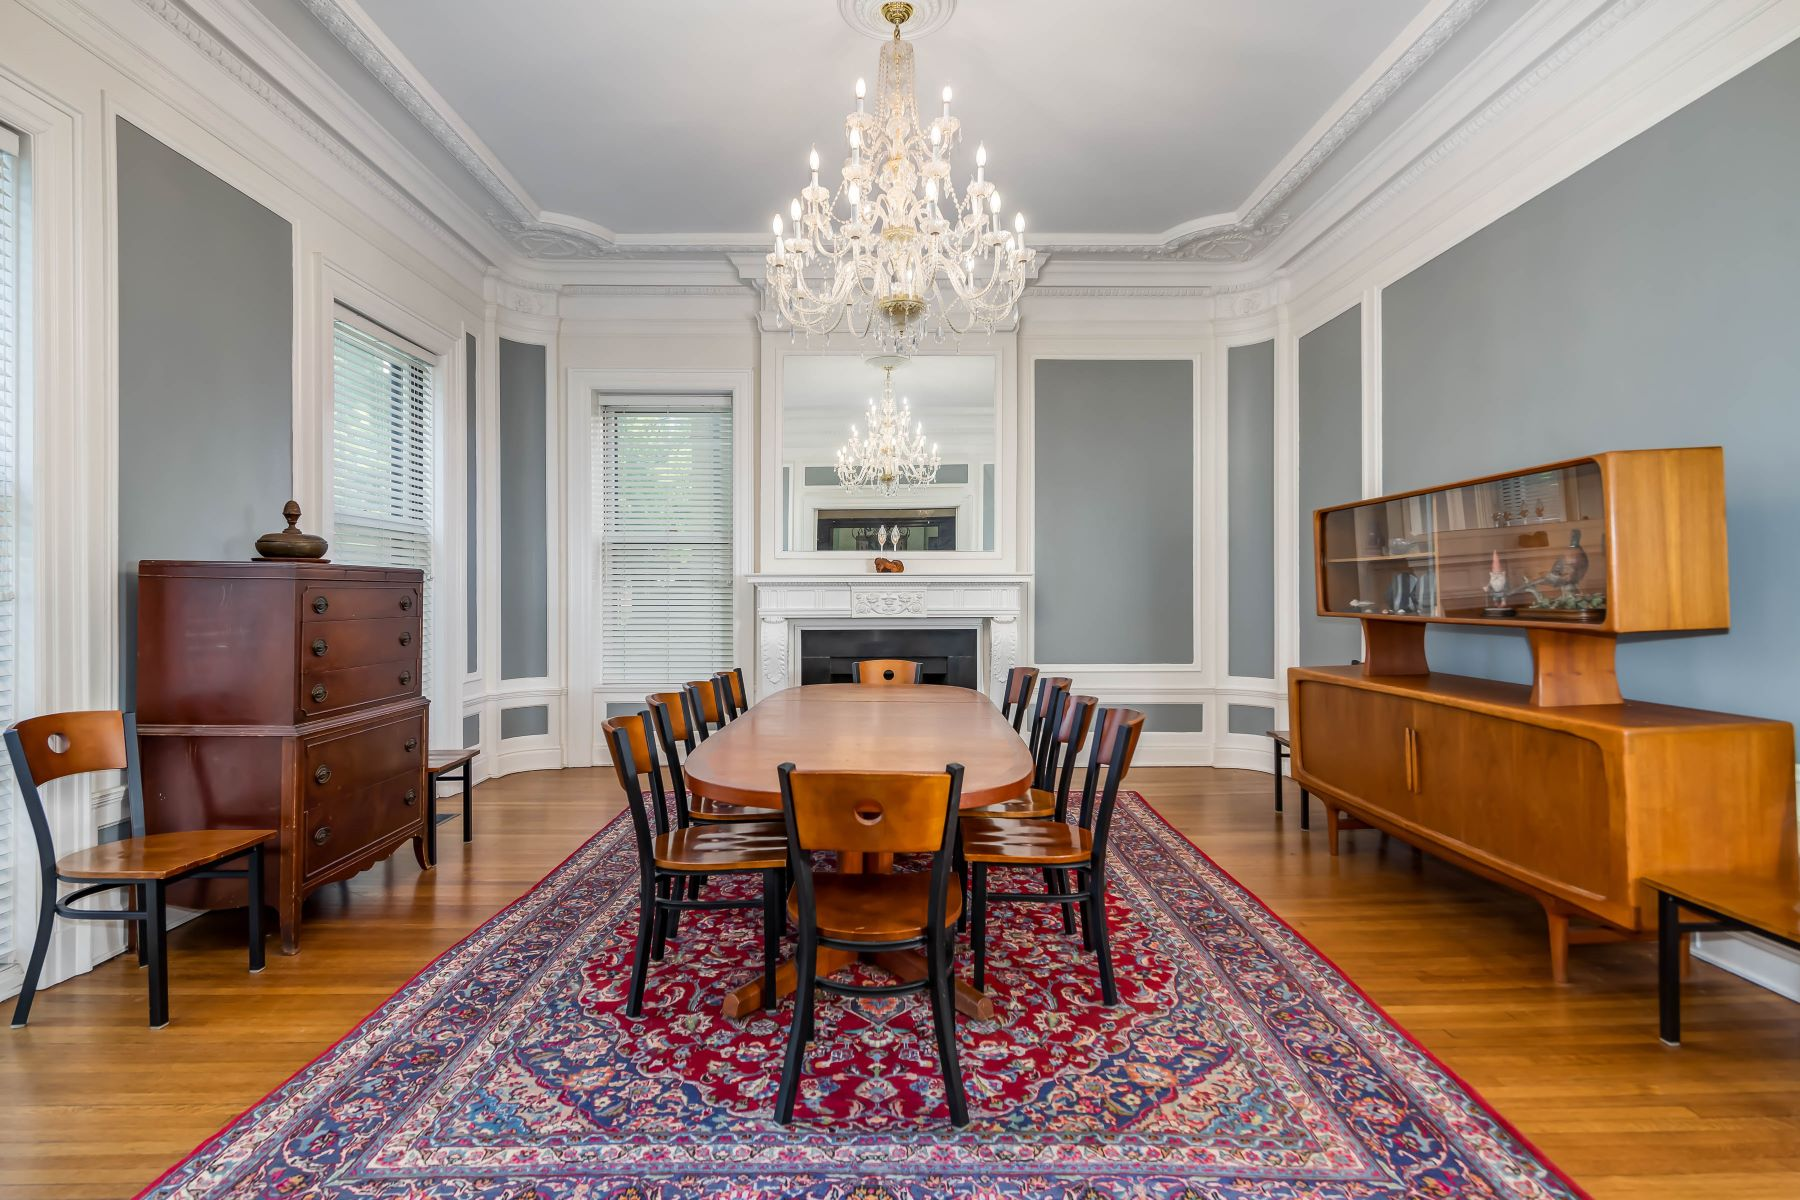 Additional photo for property listing at Historic Manse in the popular Washington Terrace neighborhood of the CWE 11 Washington Terrace St. Louis, Missouri 63112 United States